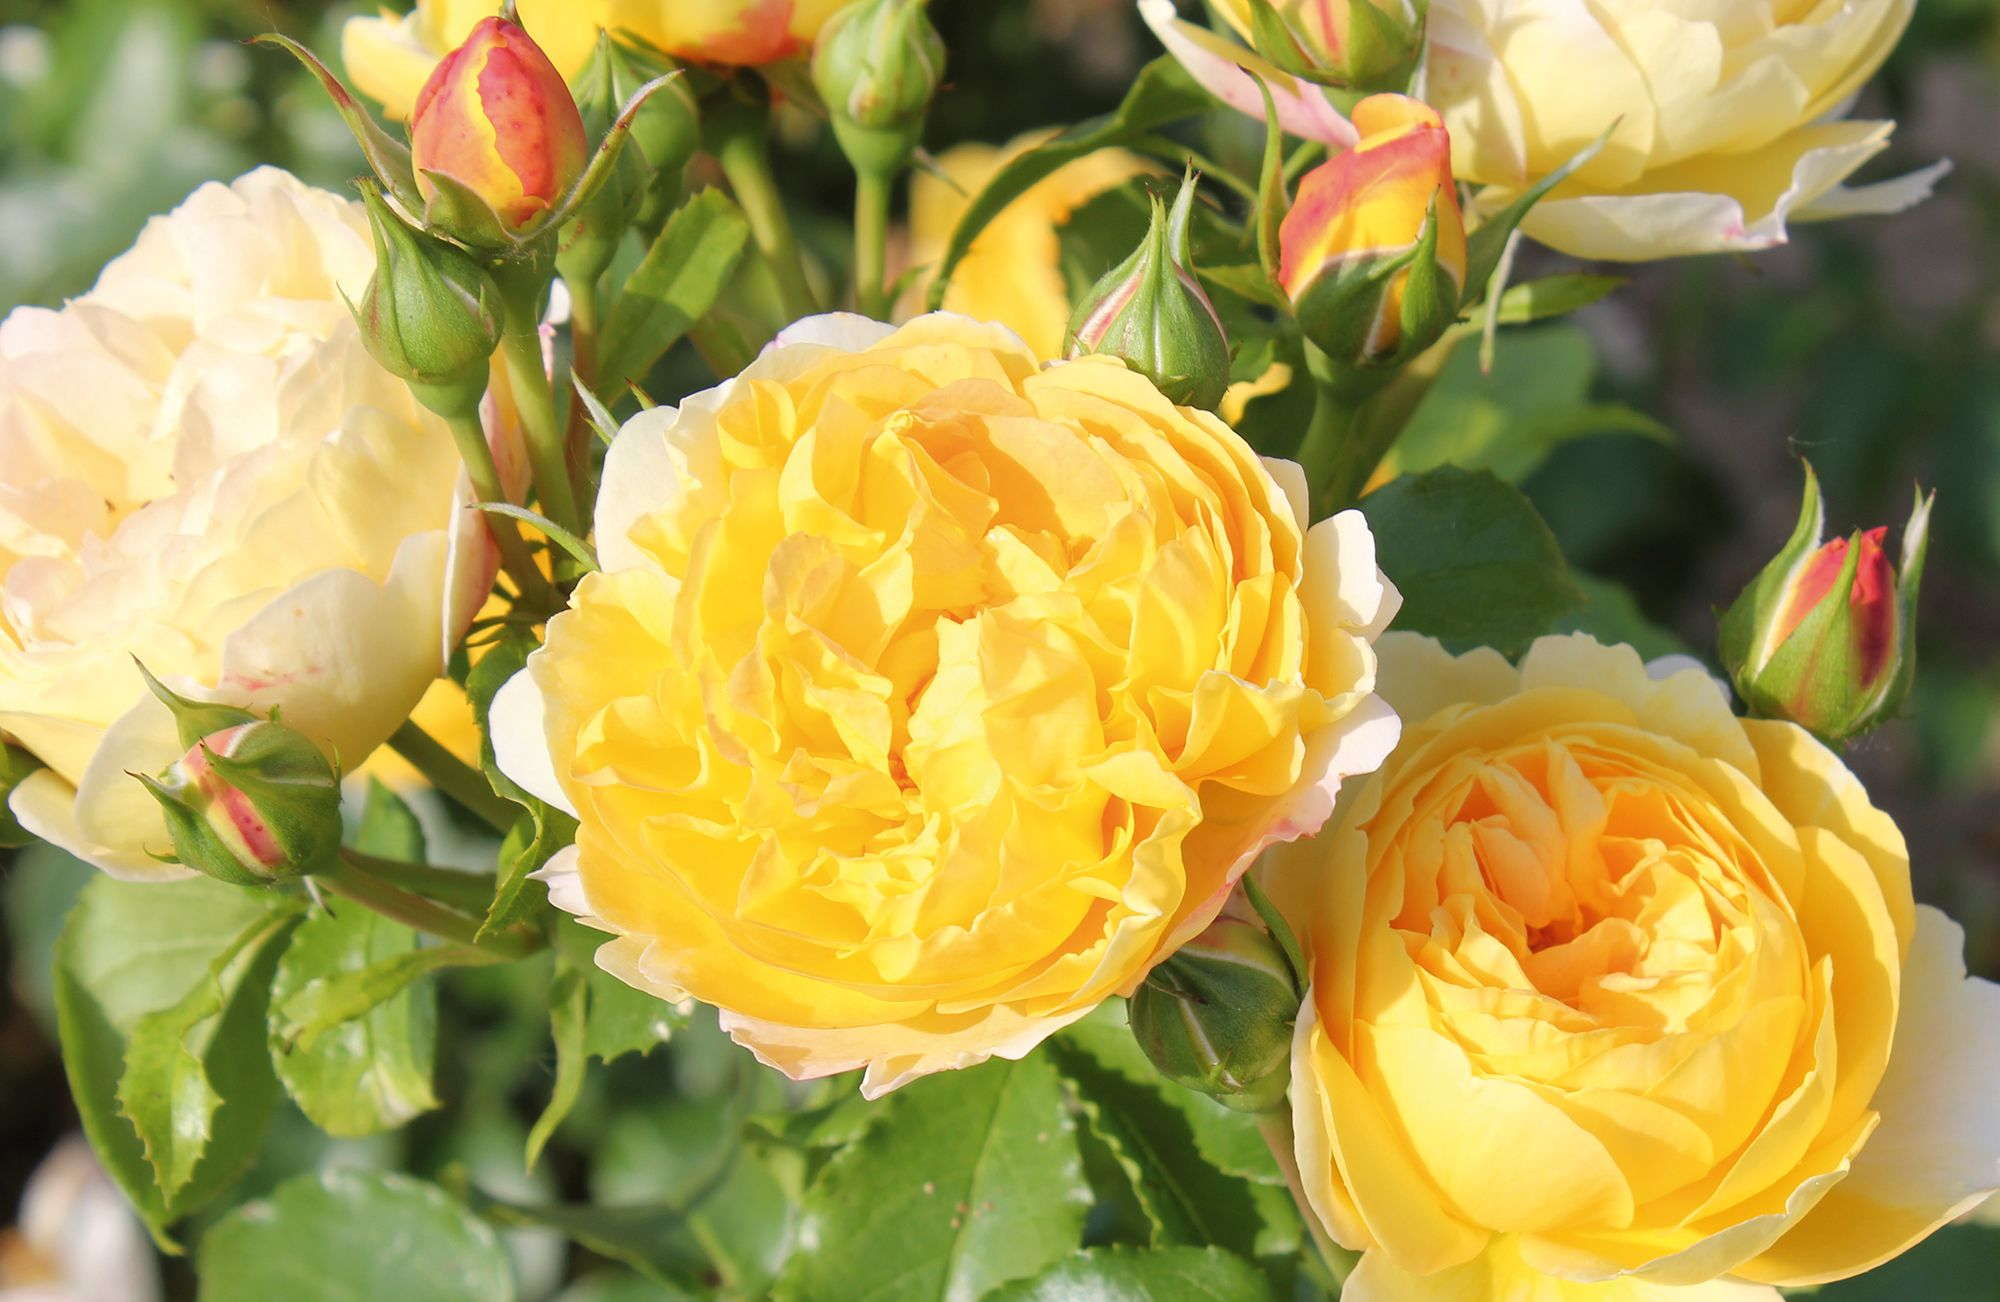 Fragranced yellow rose 'Belle de Jour' is Rose of the Year for 2021